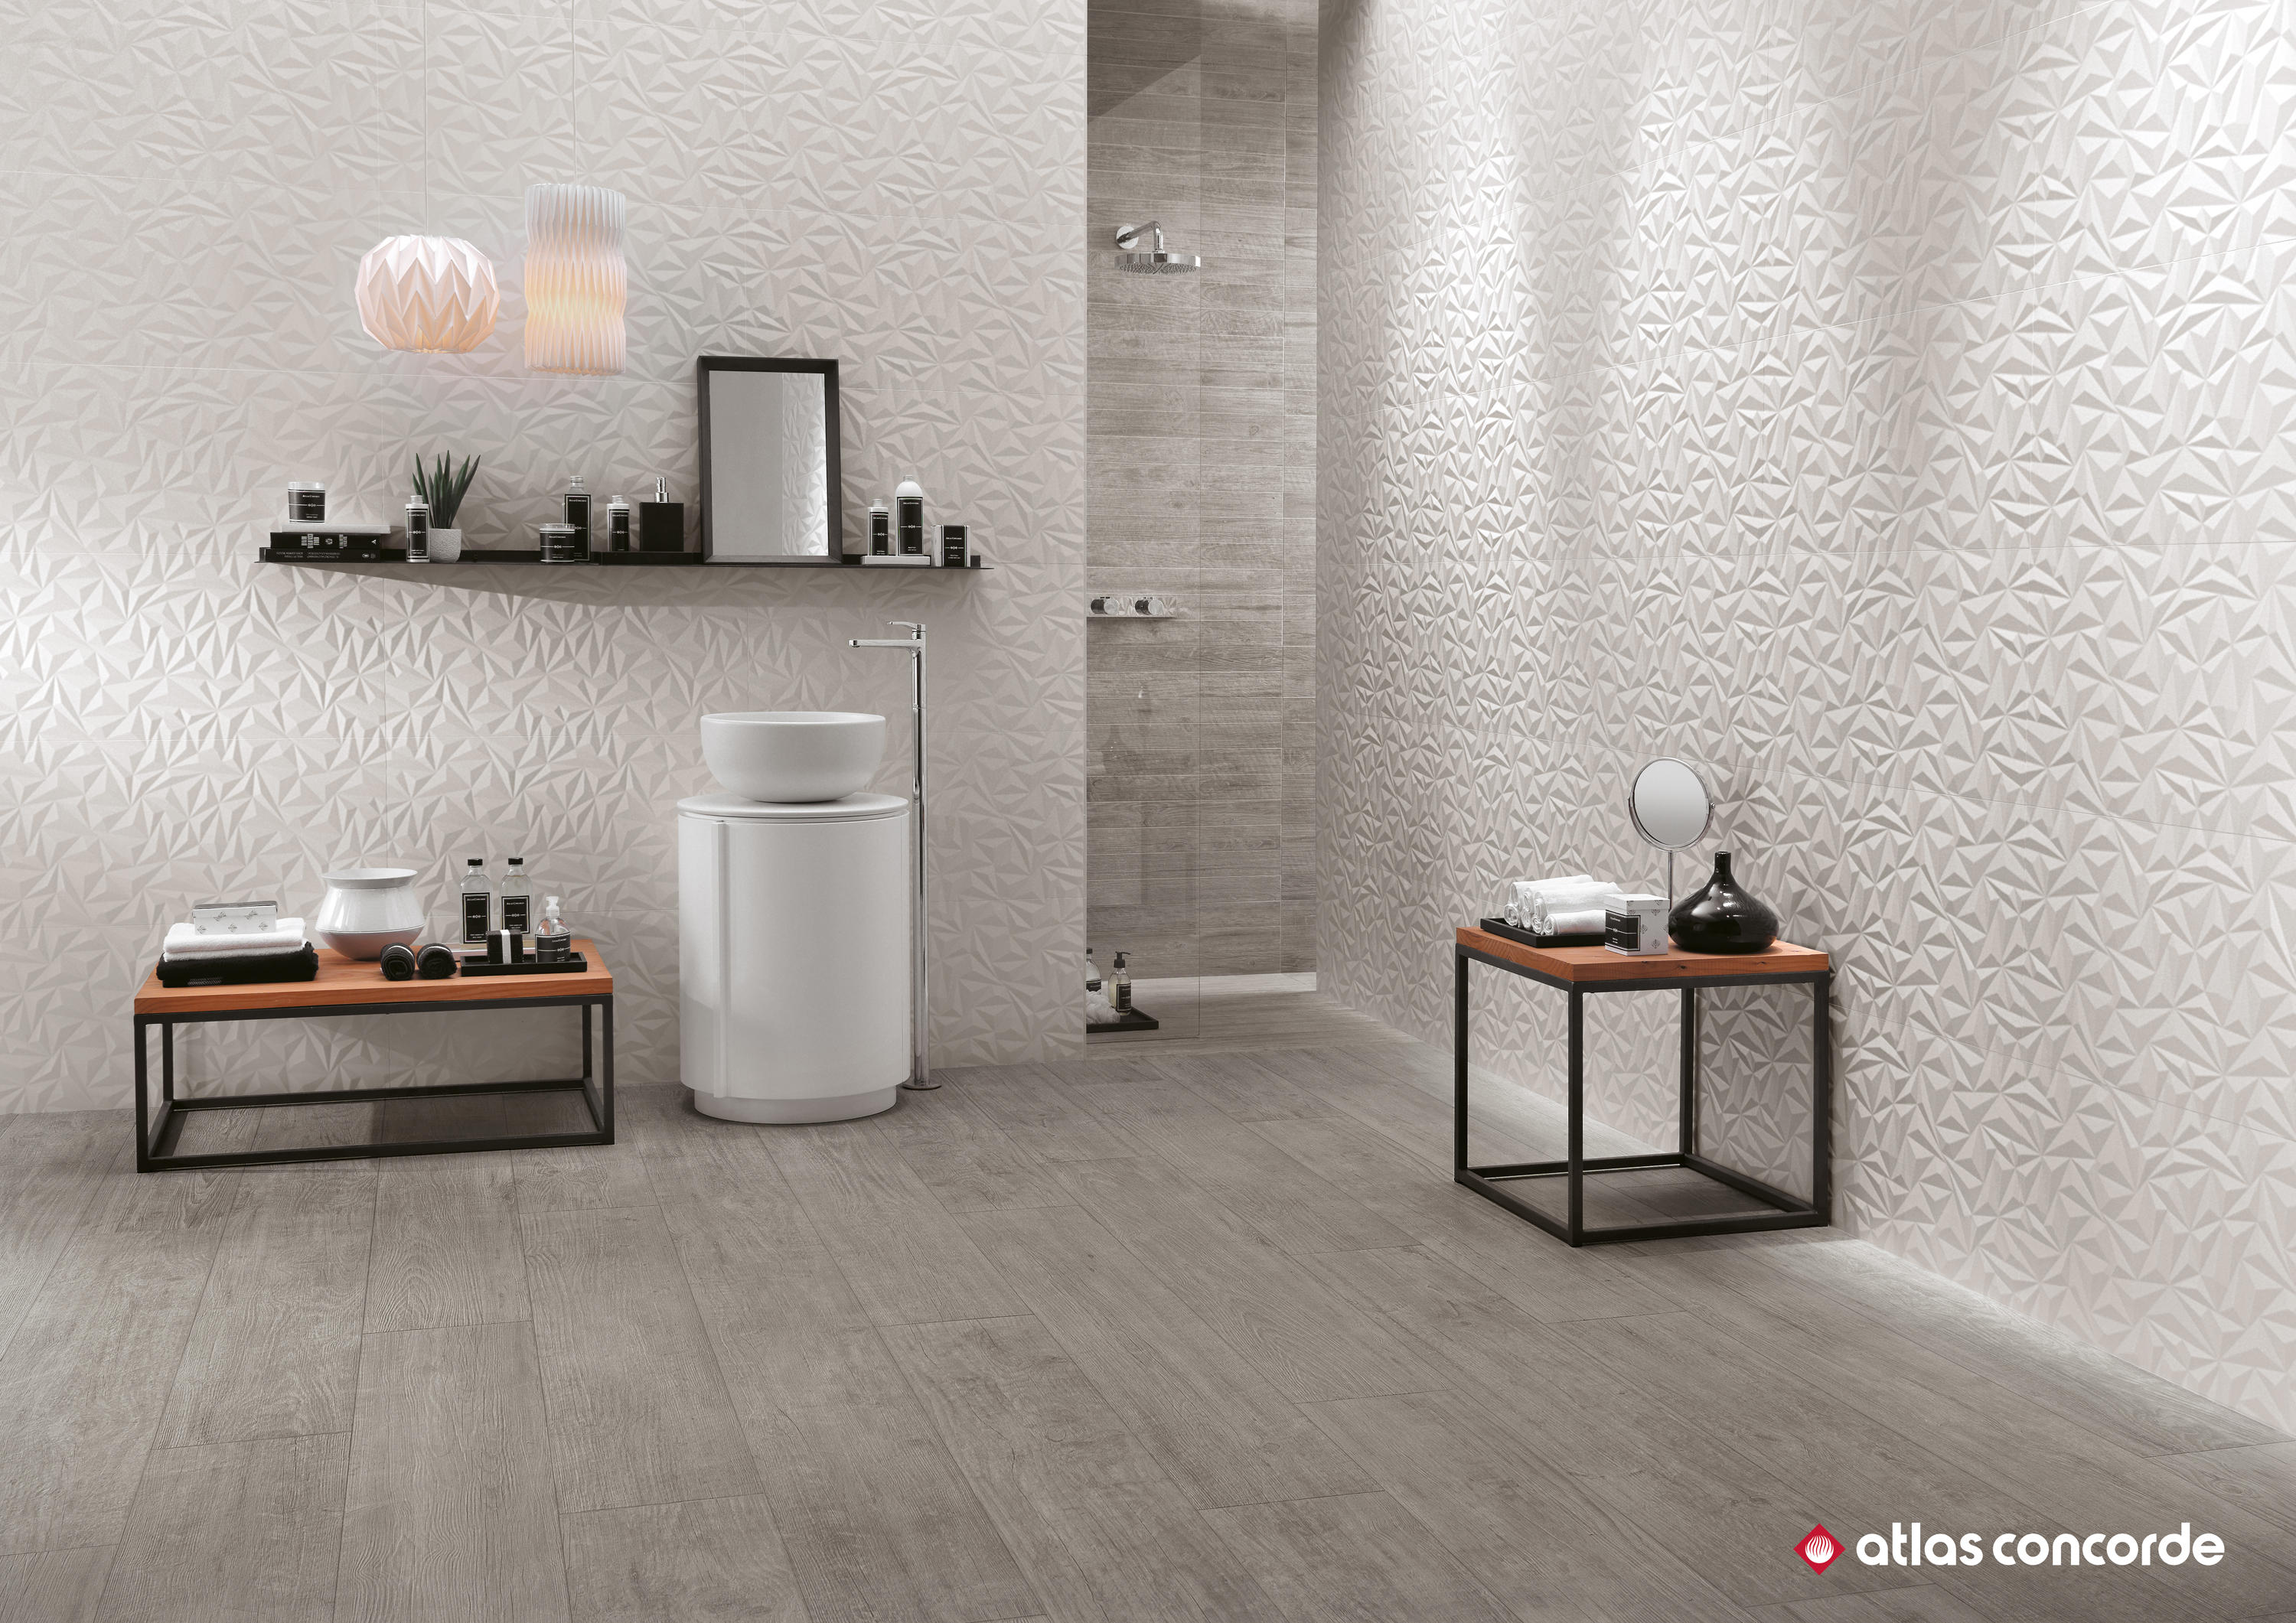 3d wall diamond white wall tiles by atlas concorde. Black Bedroom Furniture Sets. Home Design Ideas